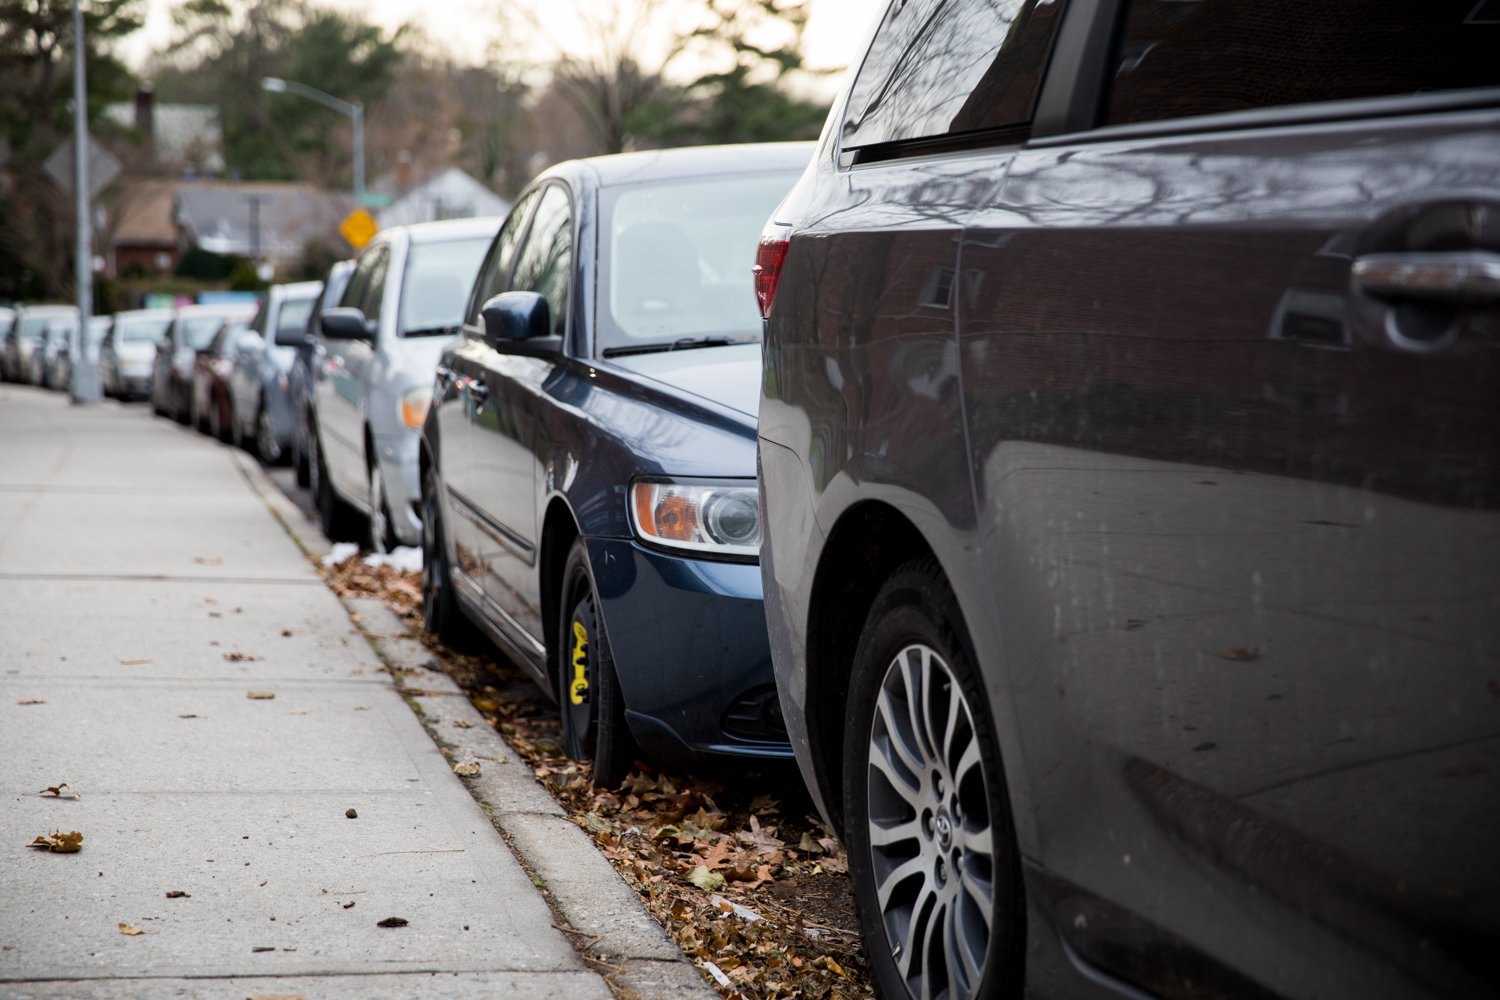 Cars are parked along Arlington Avenue between West 256th and West 259th streets, a stretch of road that can be occasionally difficult for finding a spot to leave your car behind.